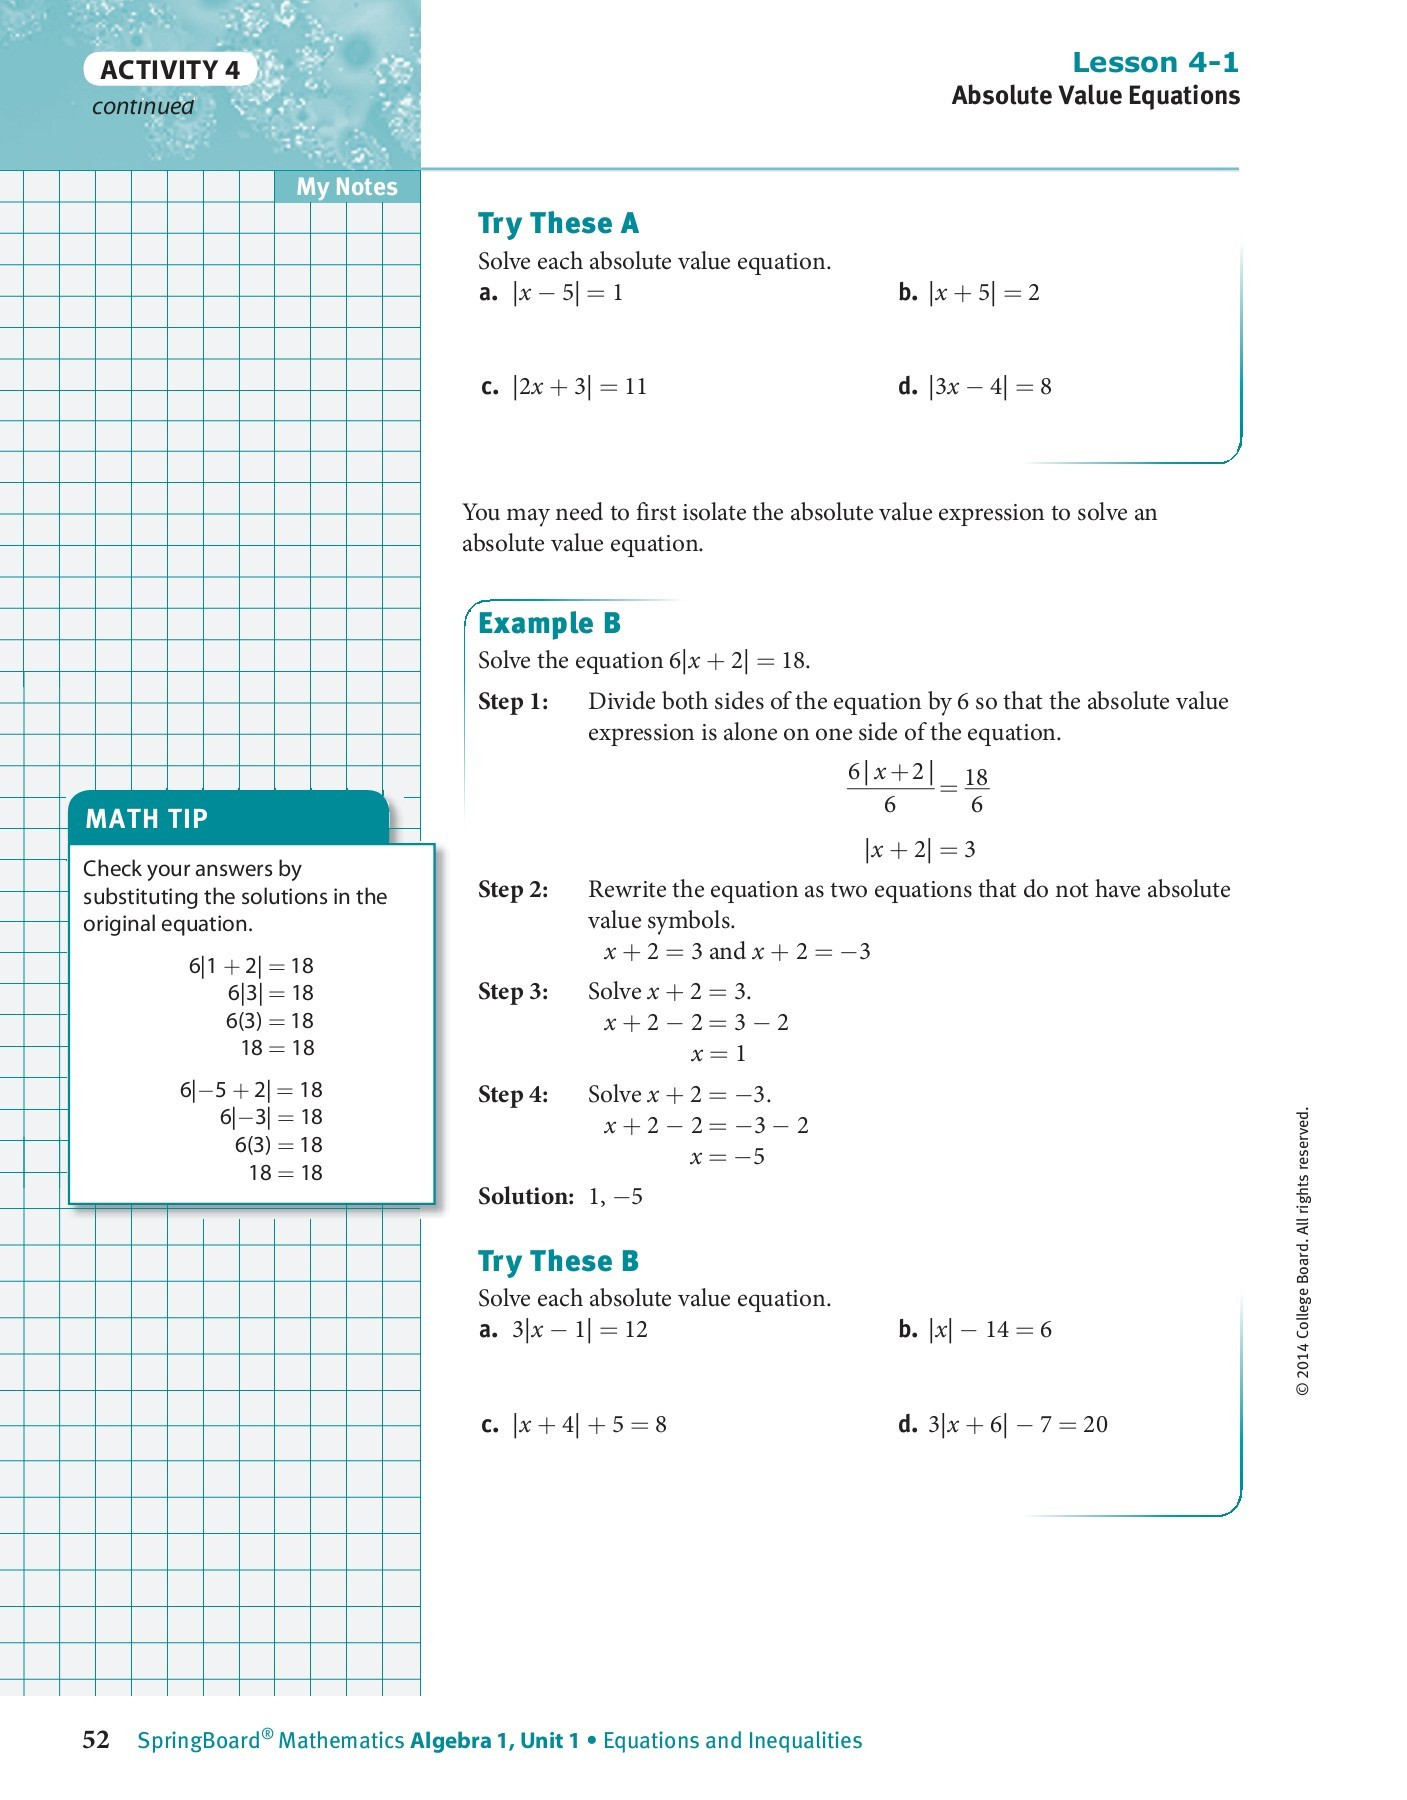 Graphing Absolute Value Inequalities Worksheet Lesson 2 6 Practice B solving Absolute Value Equations